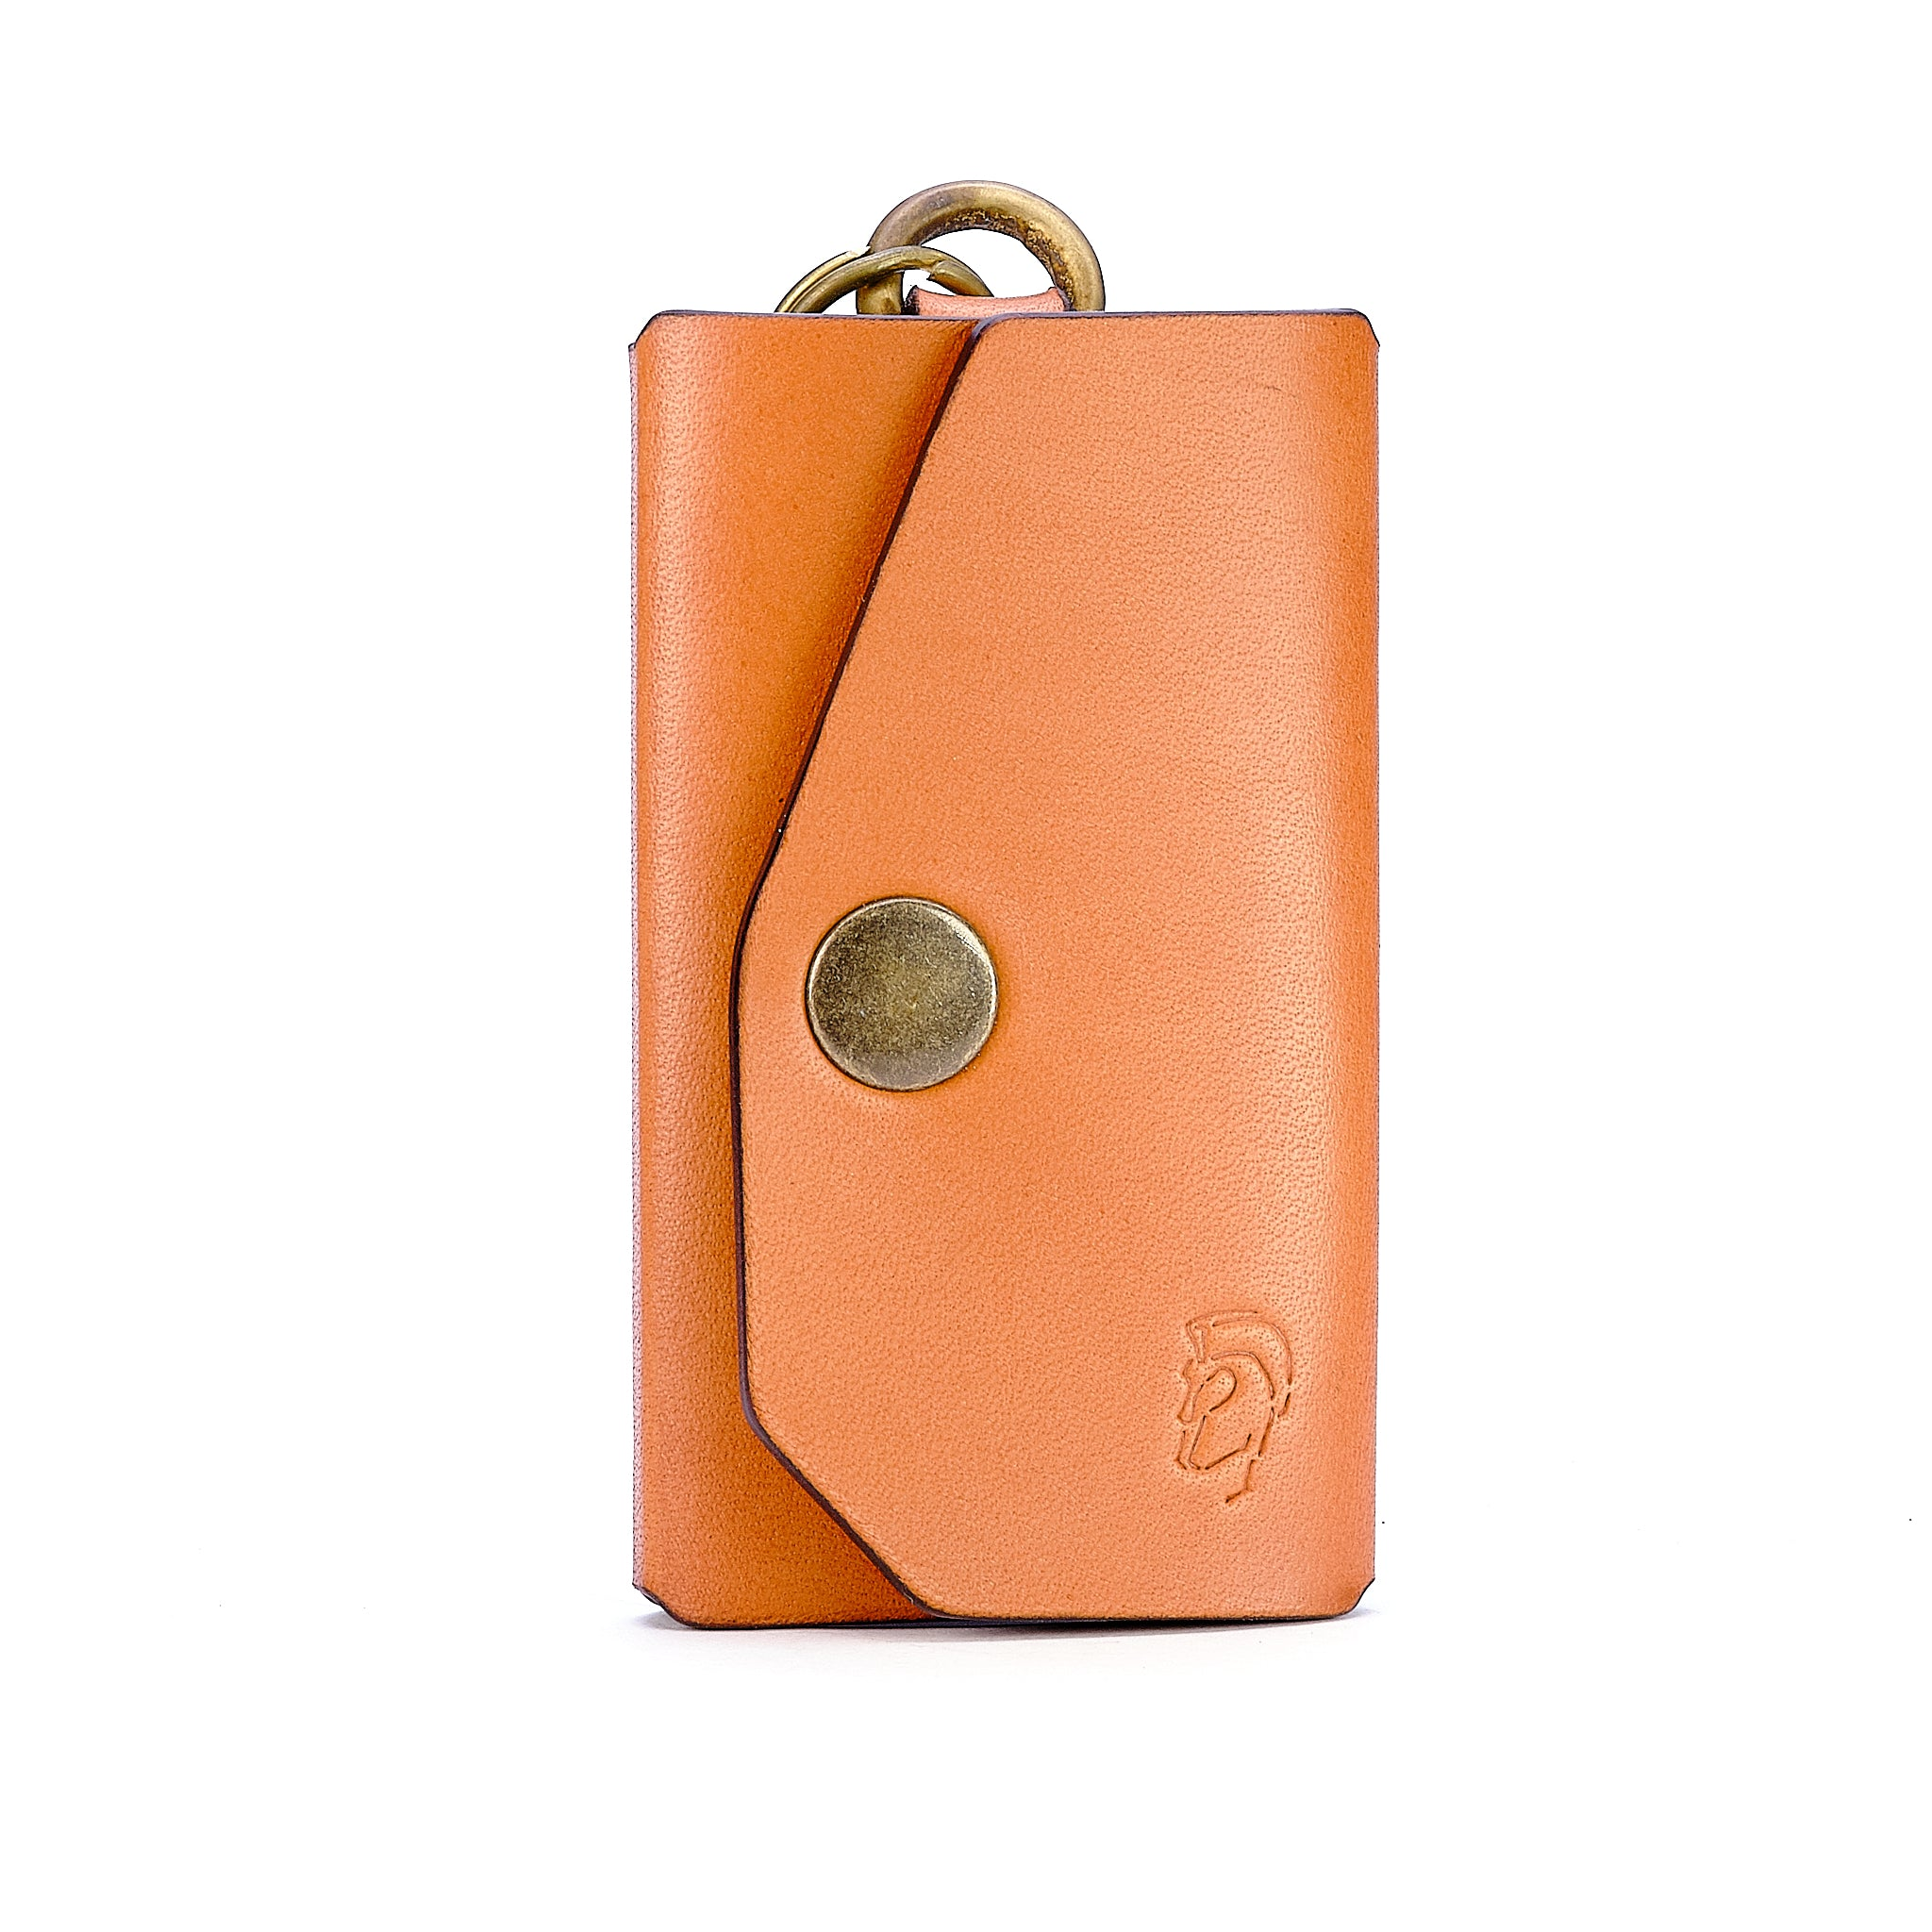 № 1502 CADO Key Case